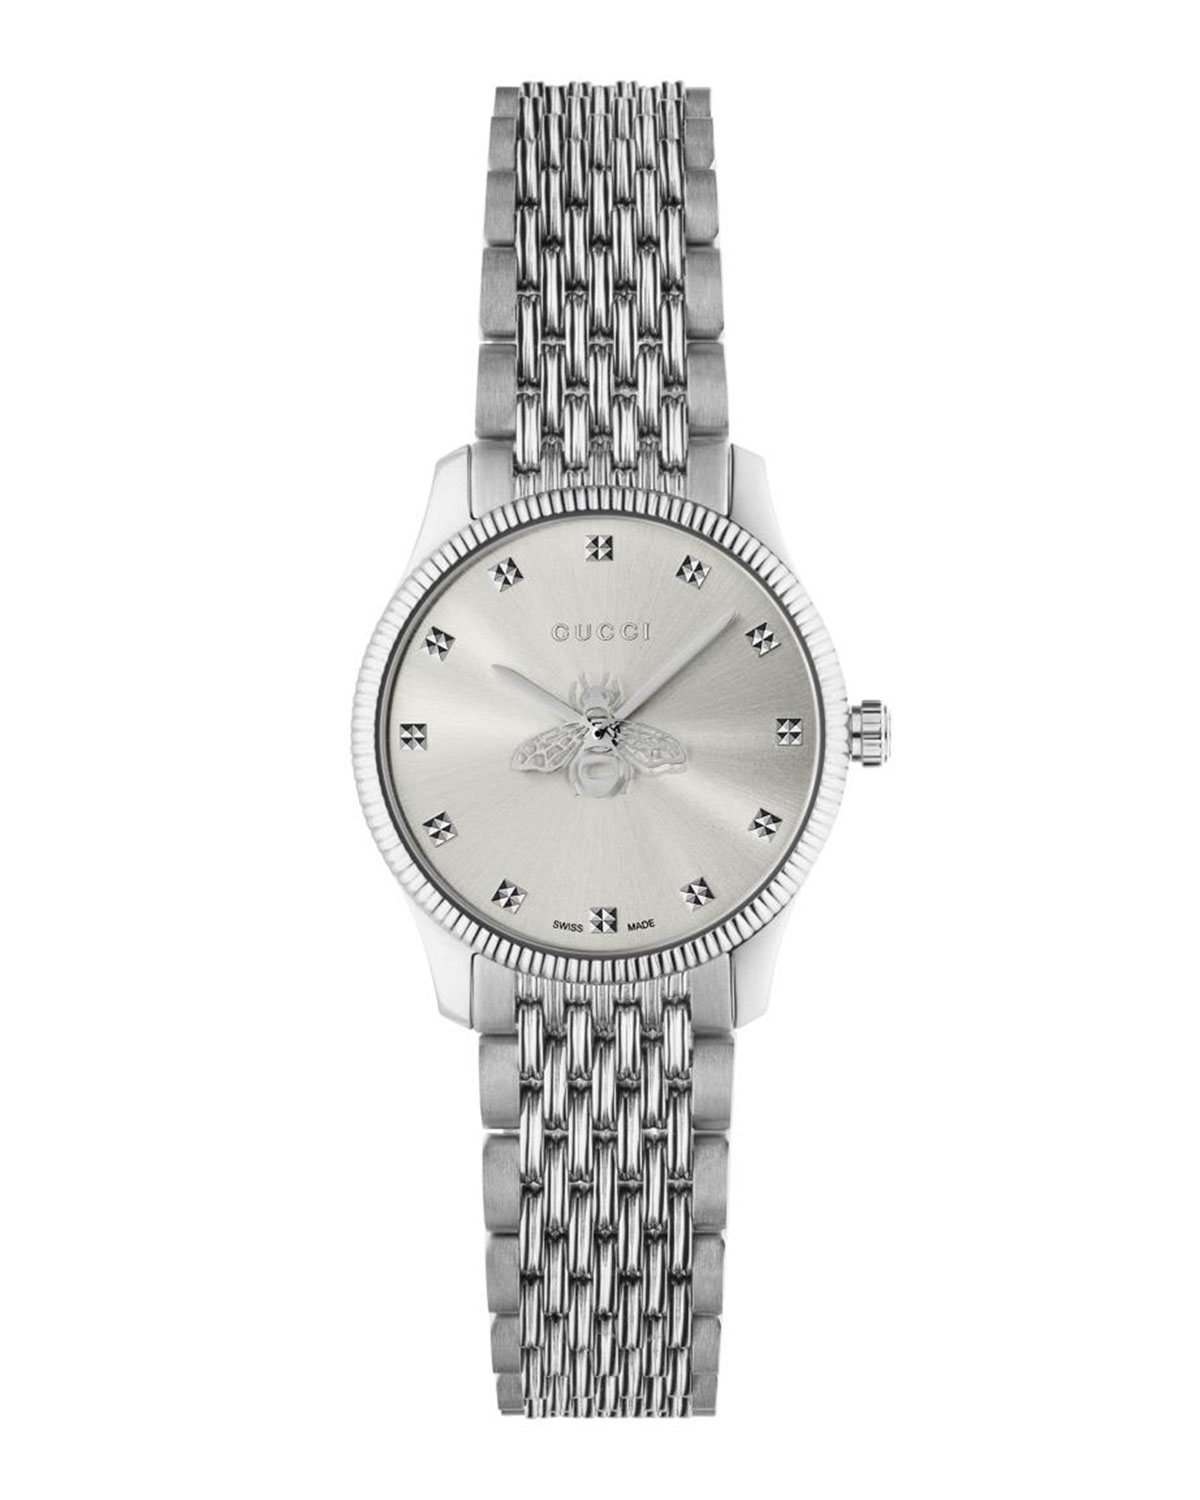 Gucci 29MM G-TIMELESS BEE WATCH WITH BRACELET STRAP, SILVER